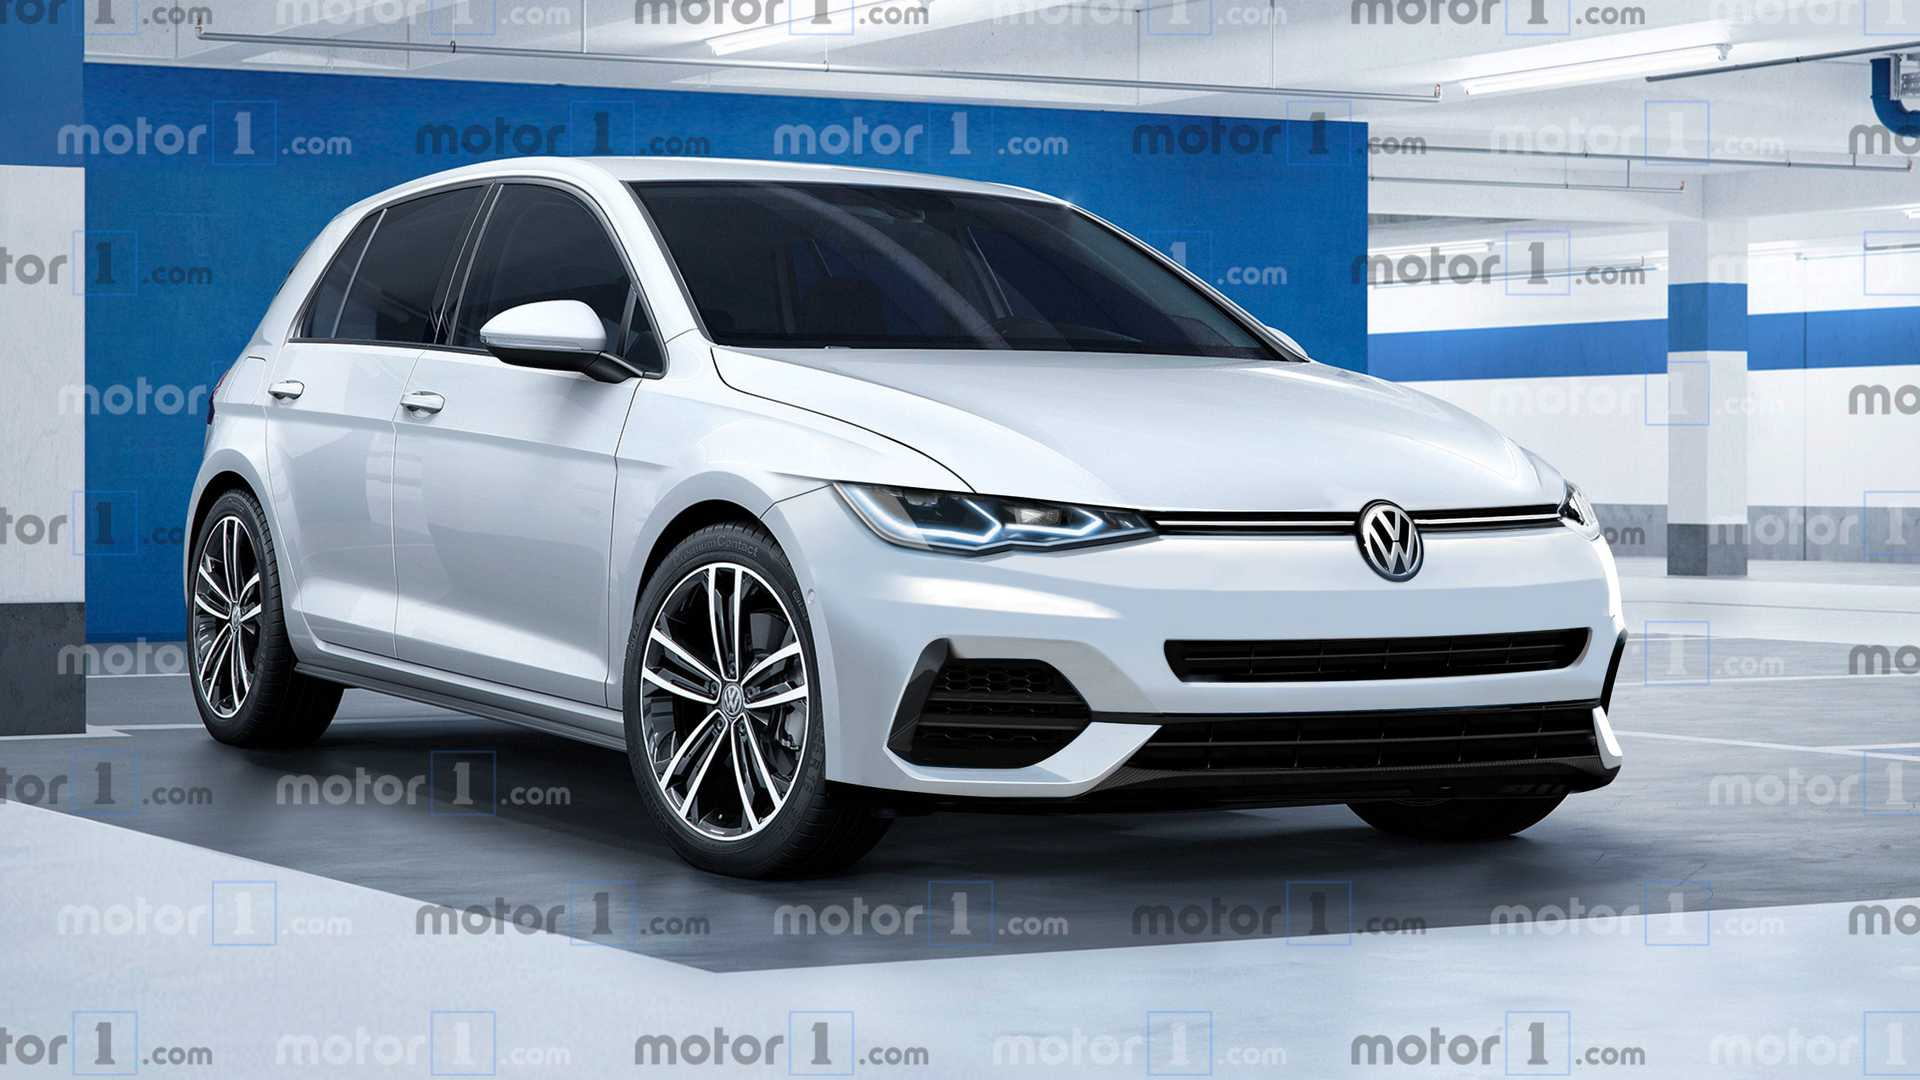 76 The Best Volkswagen Golf Gtd 2020 Overview